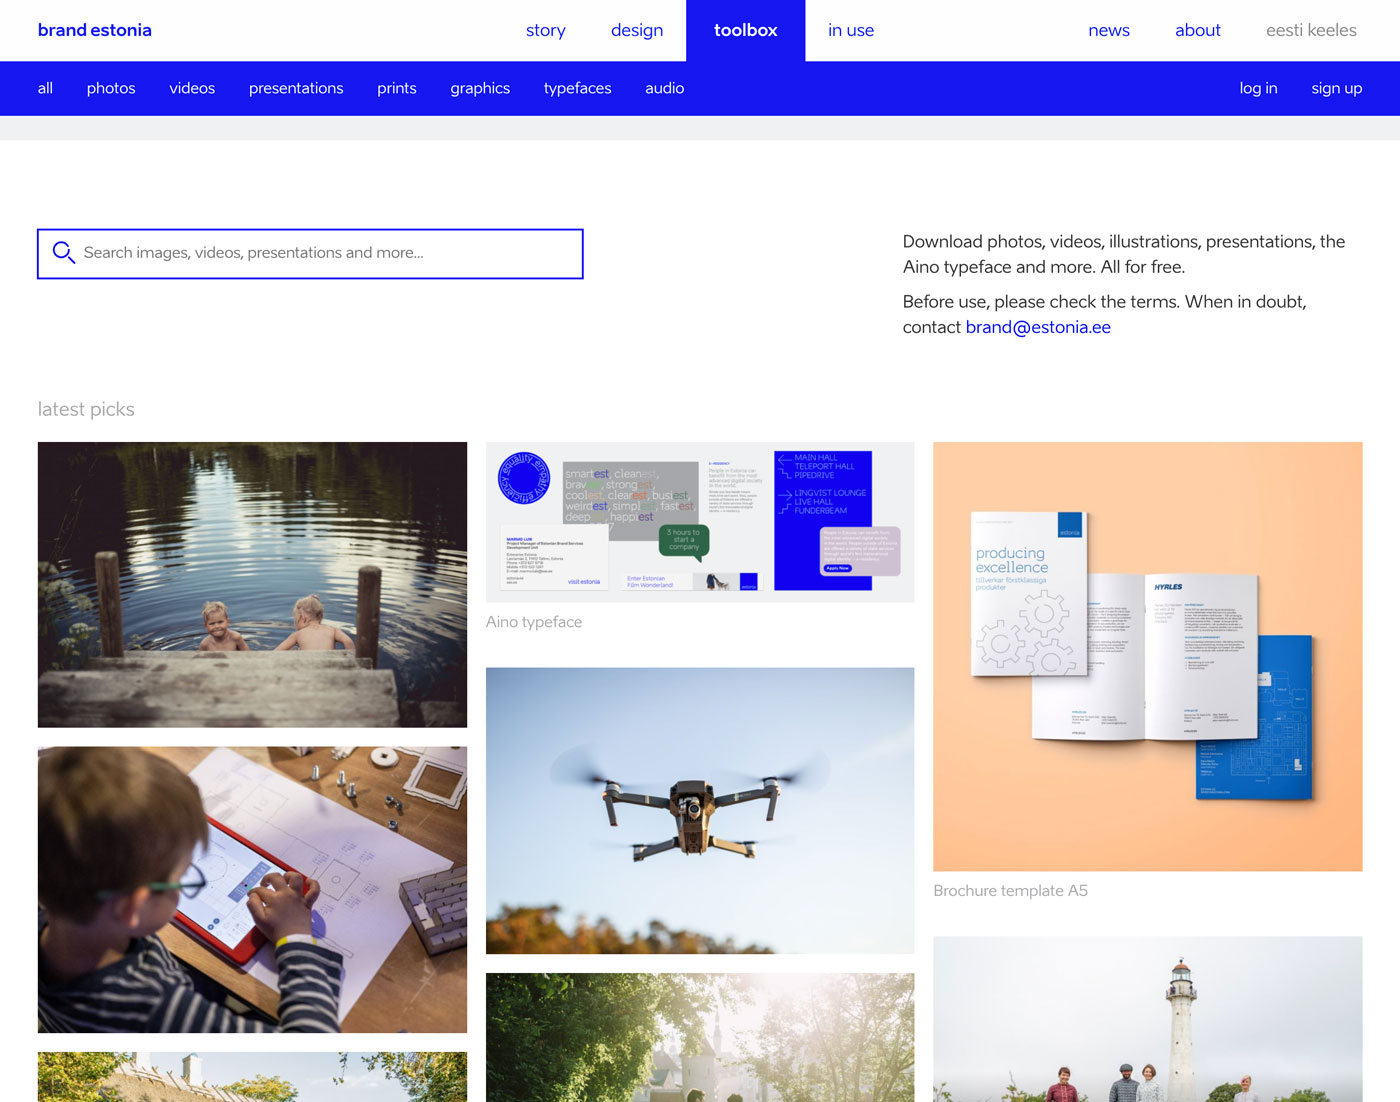 country of estonia's online brand and design system